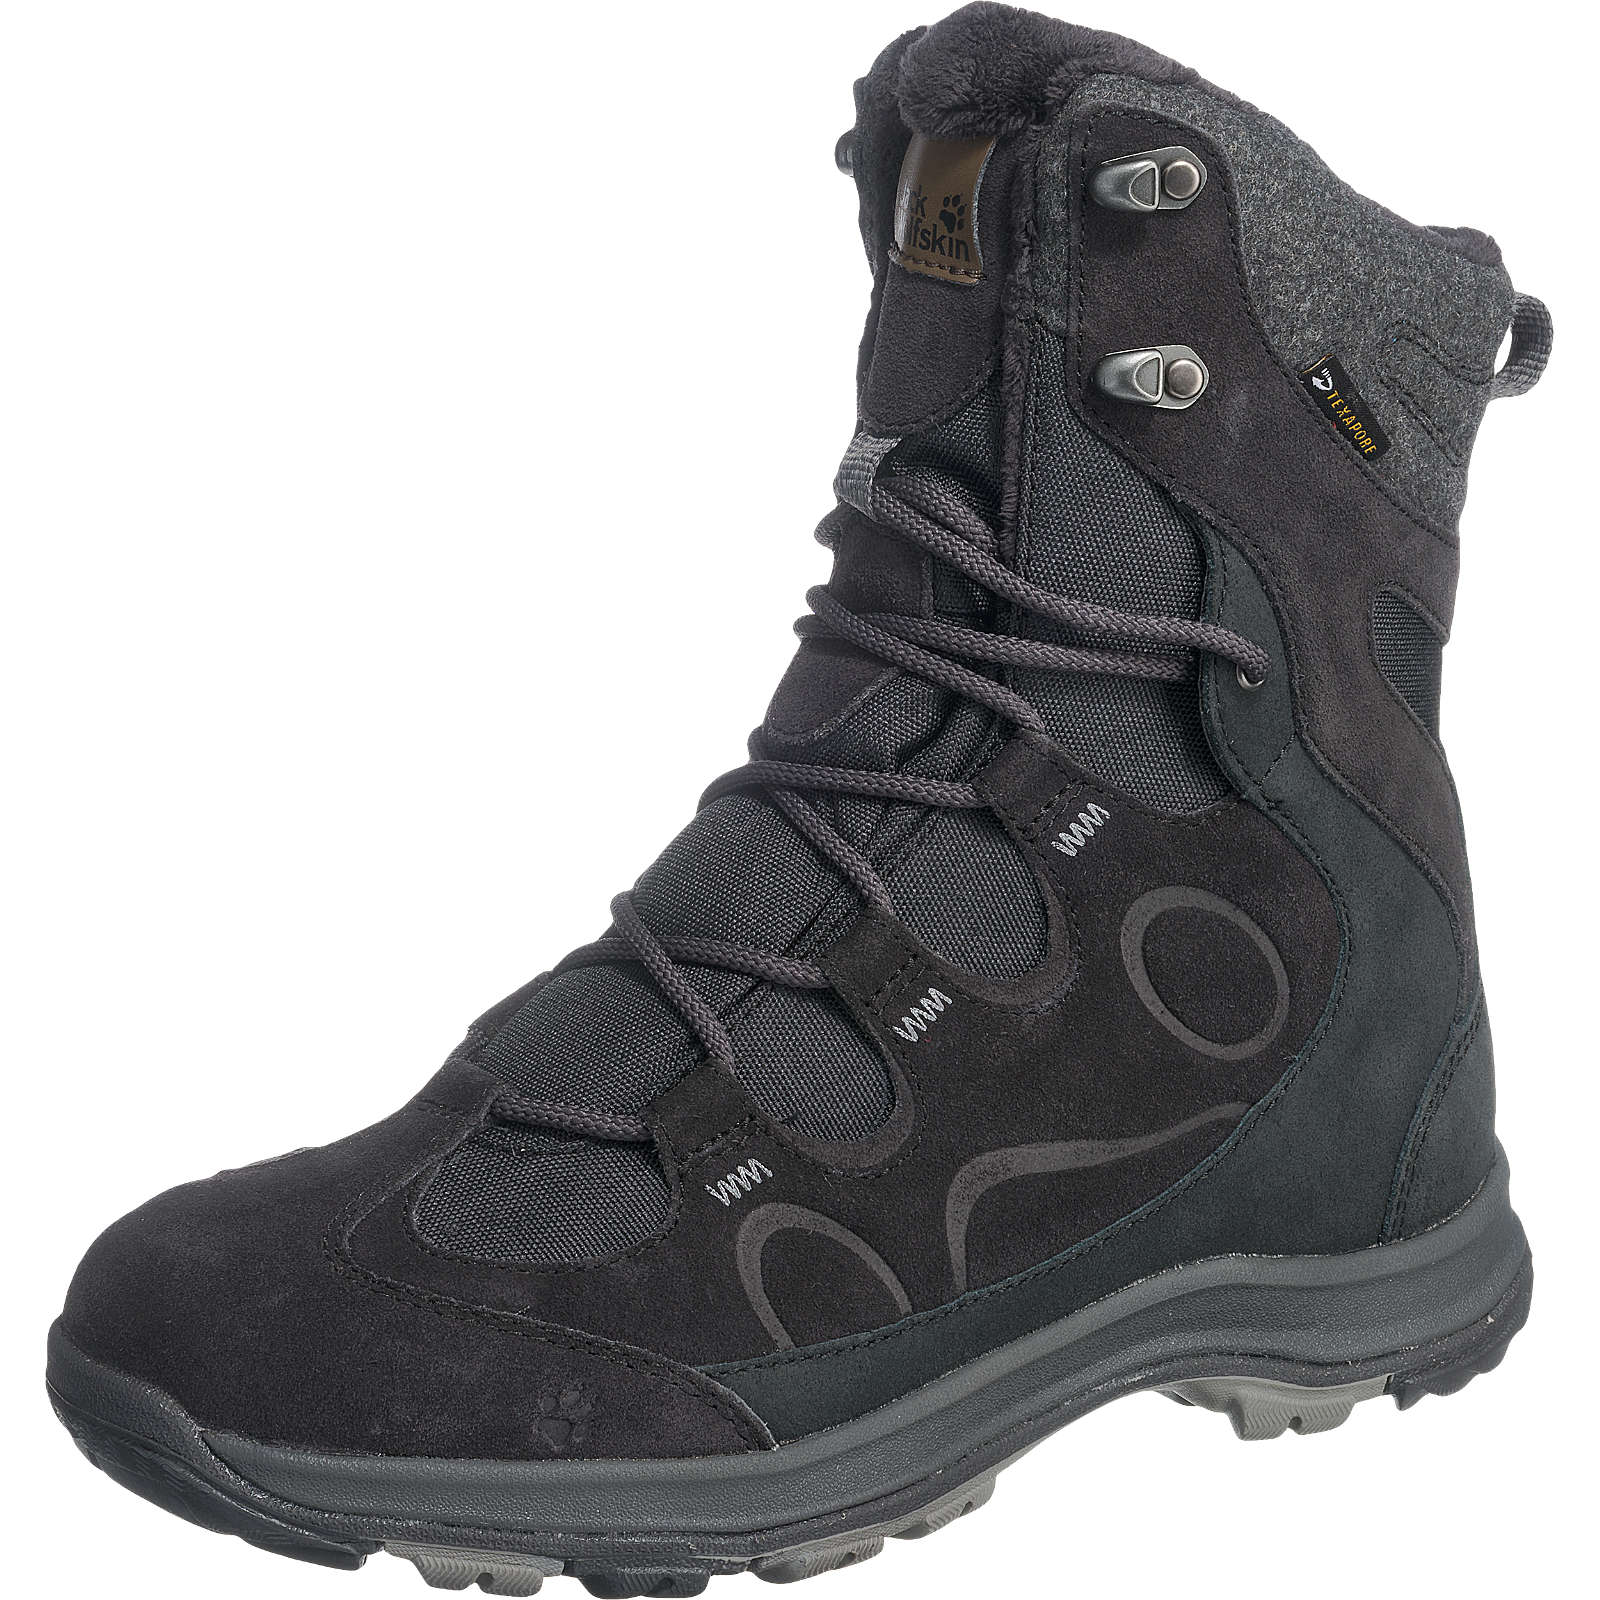 JACK WOLFSKIN Thunder Bay Texapore High Outdoor Stiefel wasserdicht anthrazit Damen Gr. 38